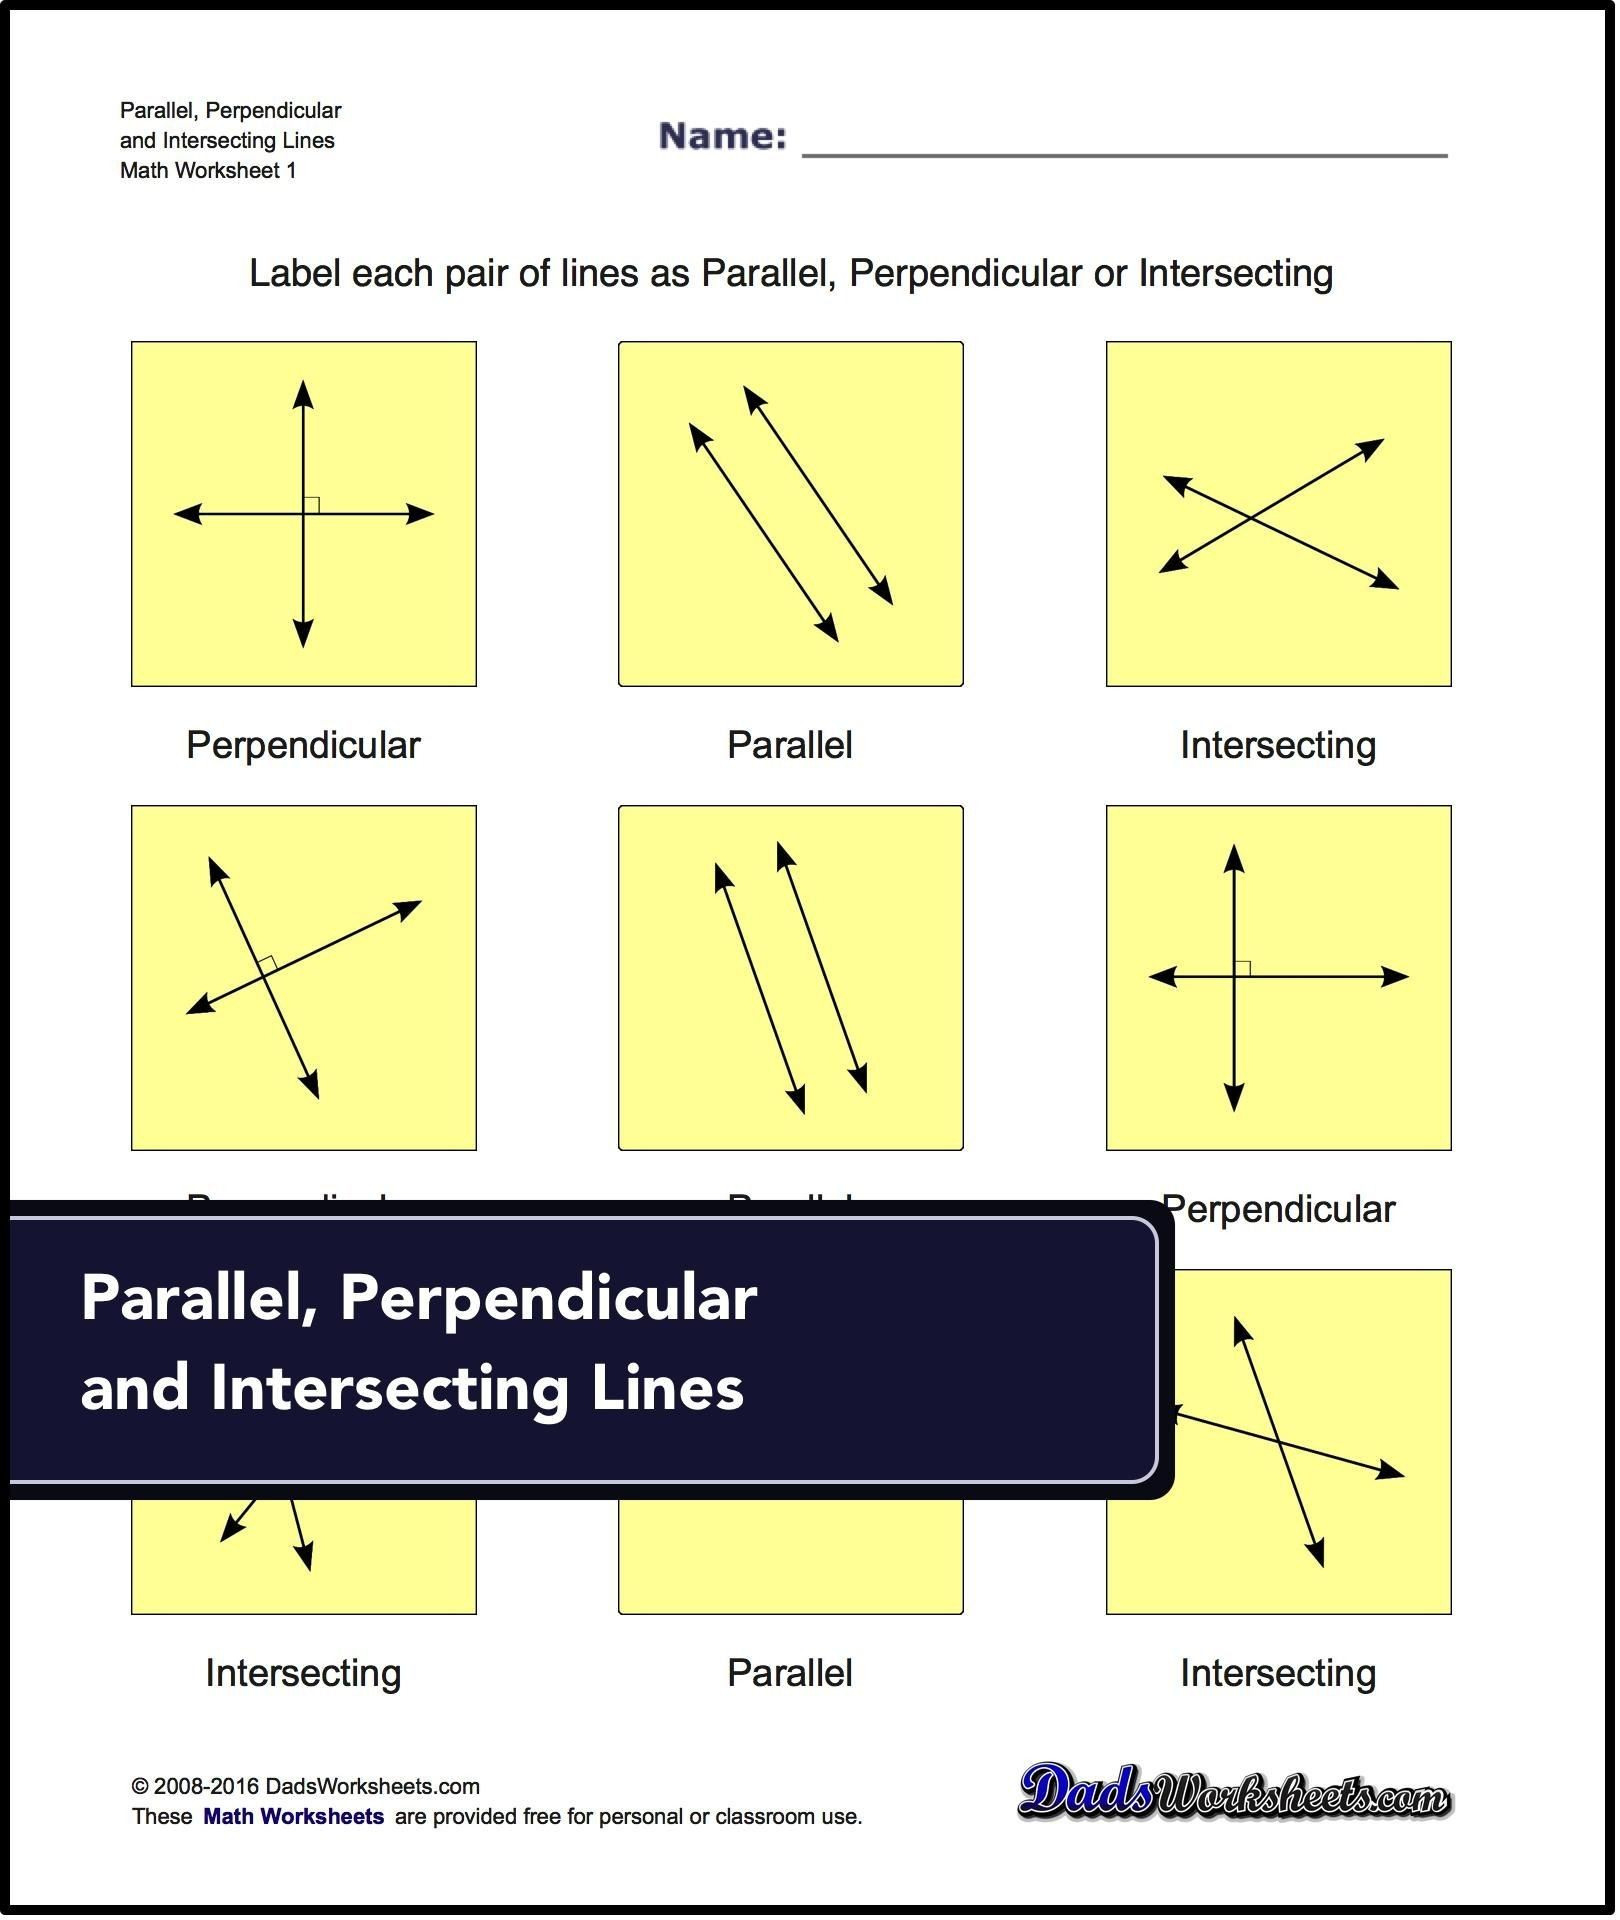 Geometry Parallel And Perpendicular Lines Worksheet Answers